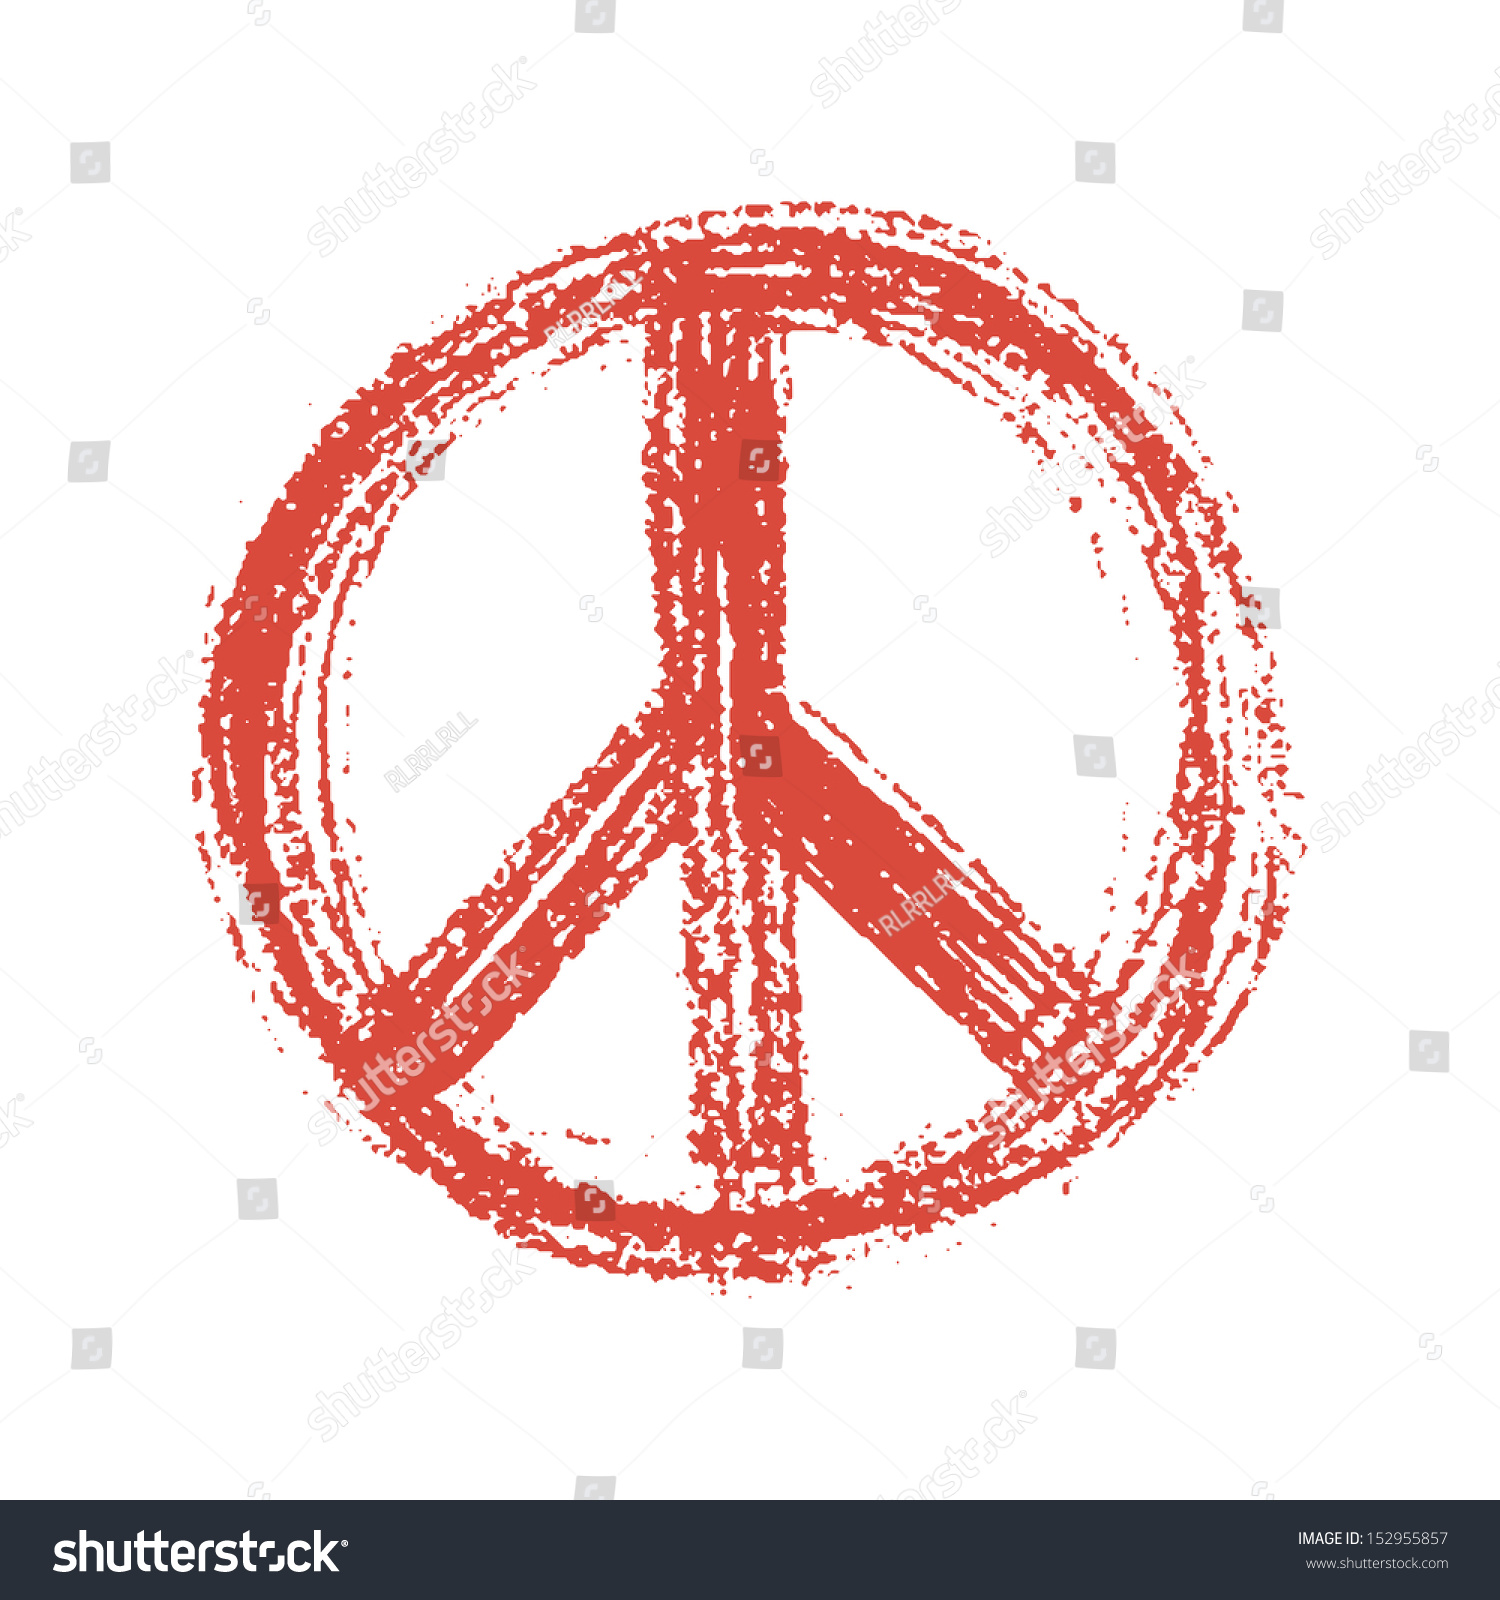 Red peace symbol created grunge style stock illustration 152955857 red peace symbol created in grunge style jpeg version biocorpaavc Images